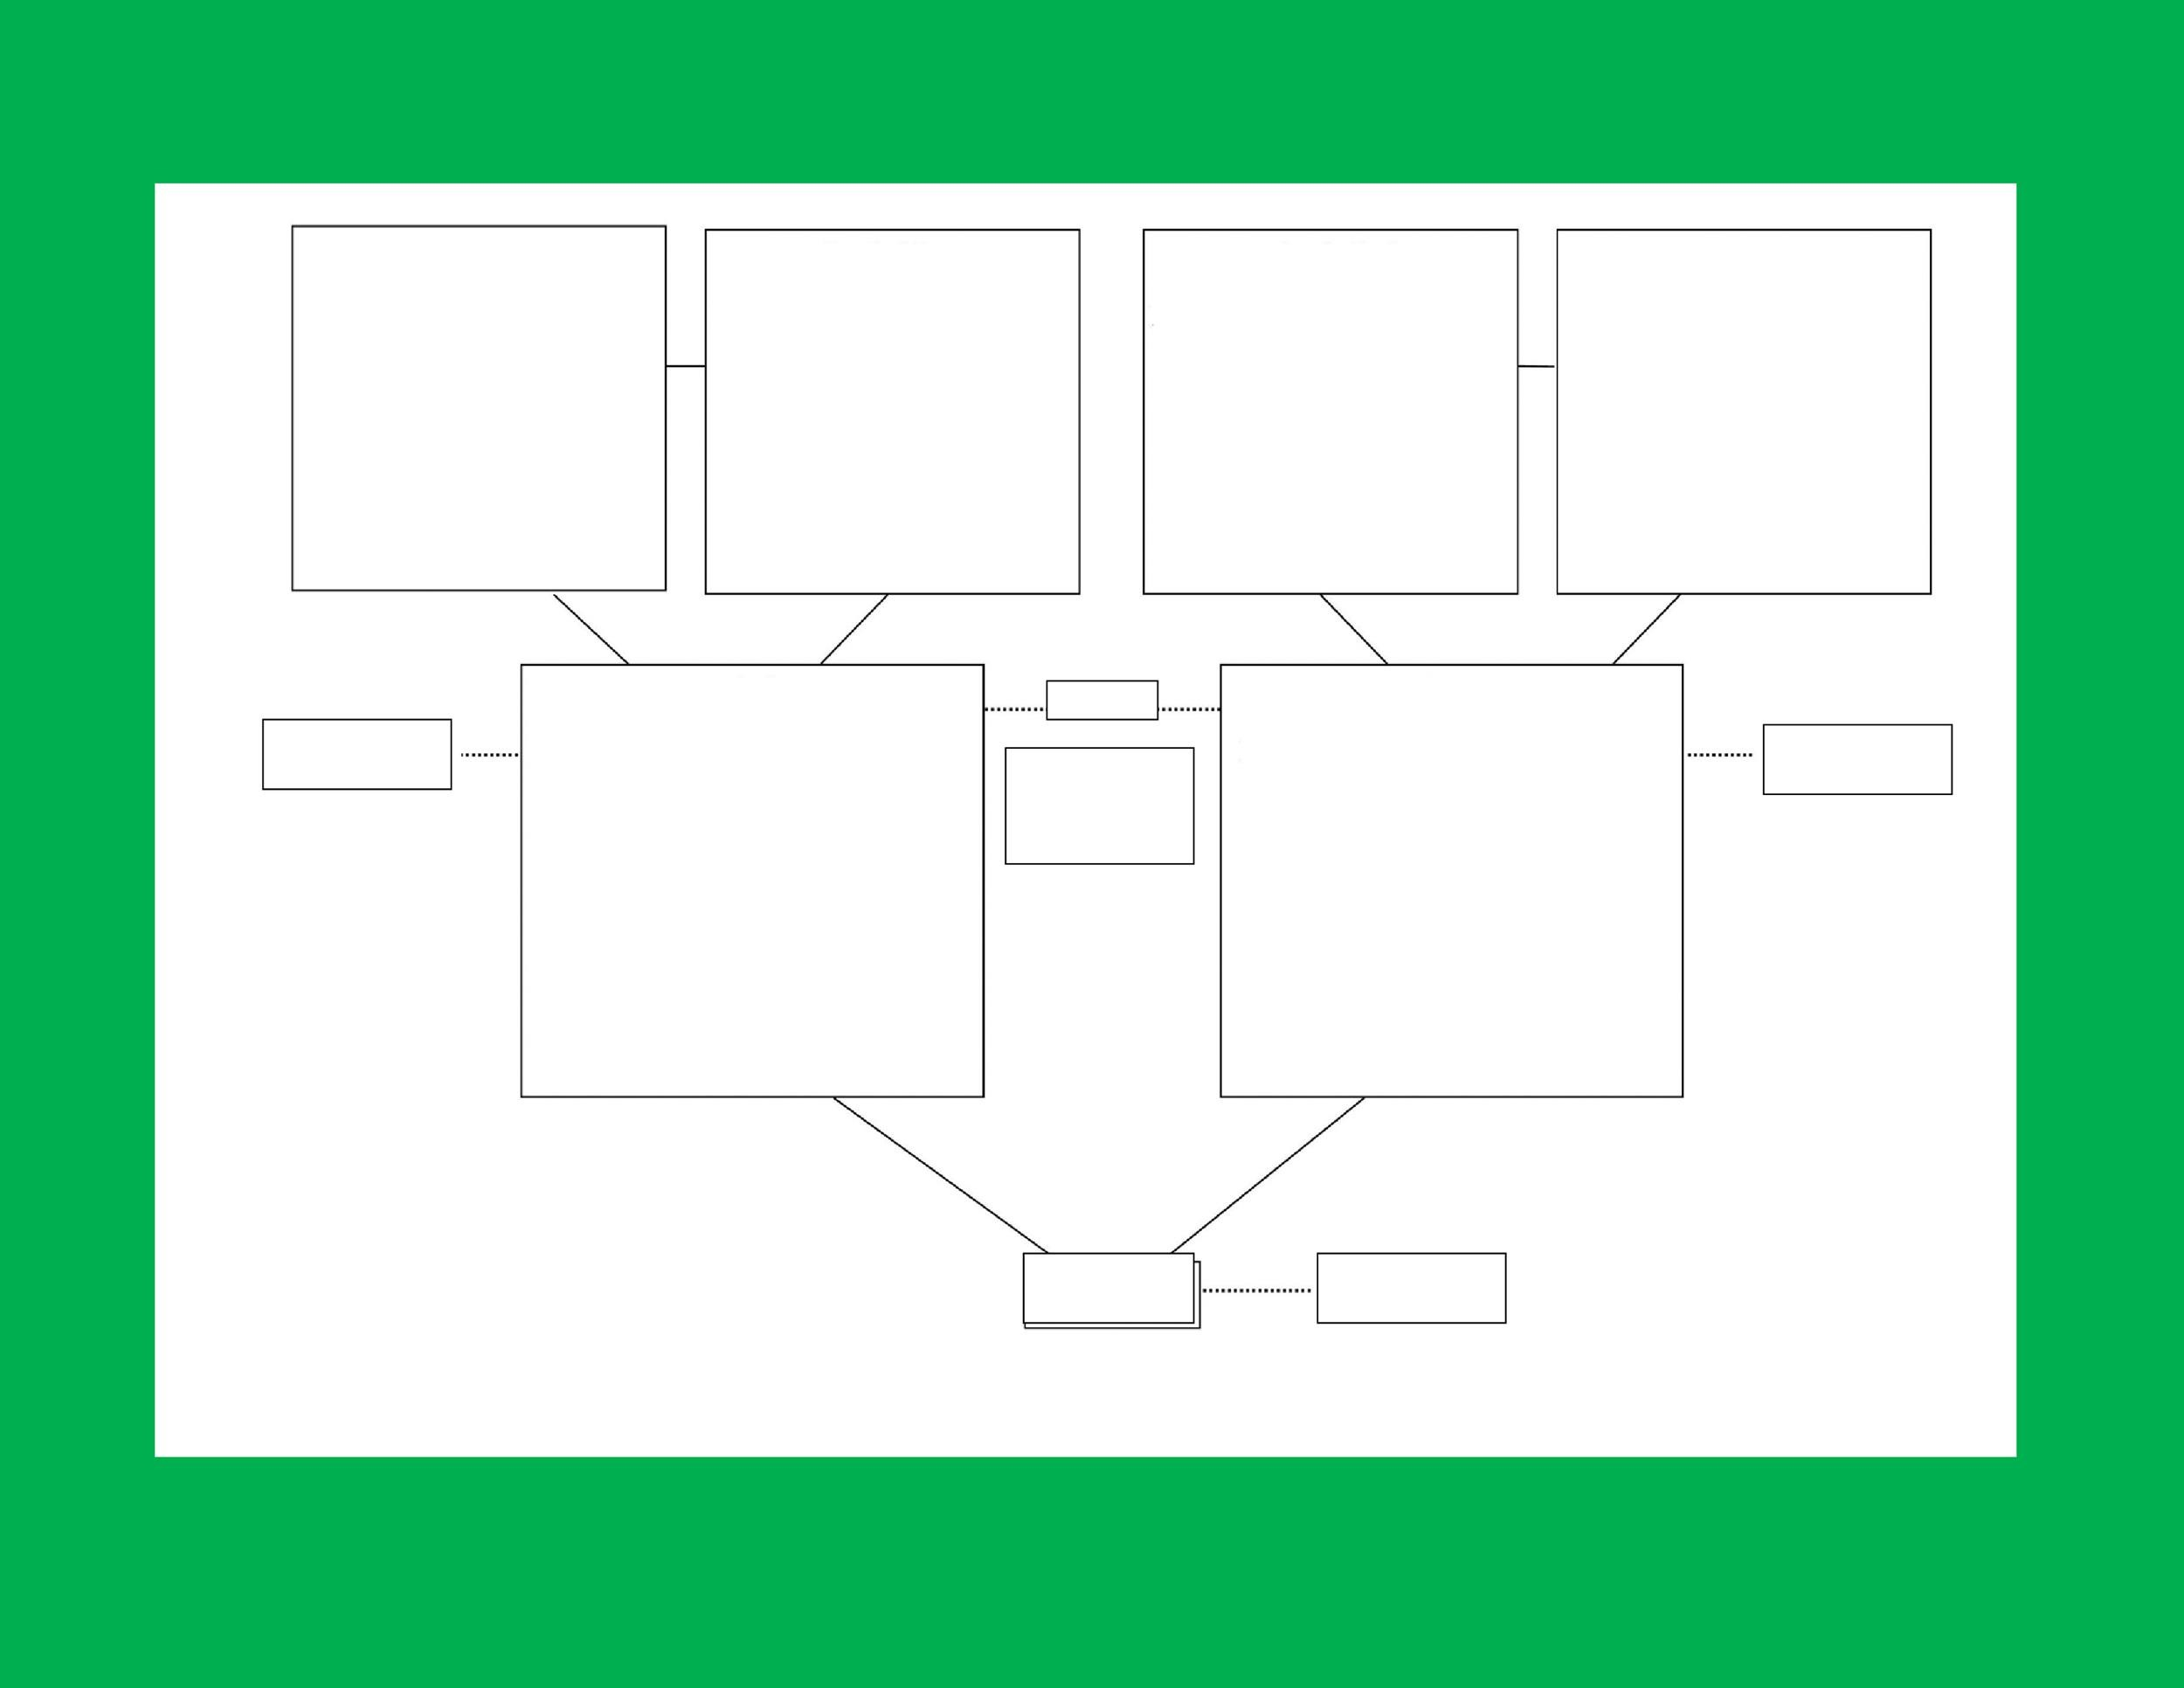 30 Free Genogram Templates & Symbols - Template Lab